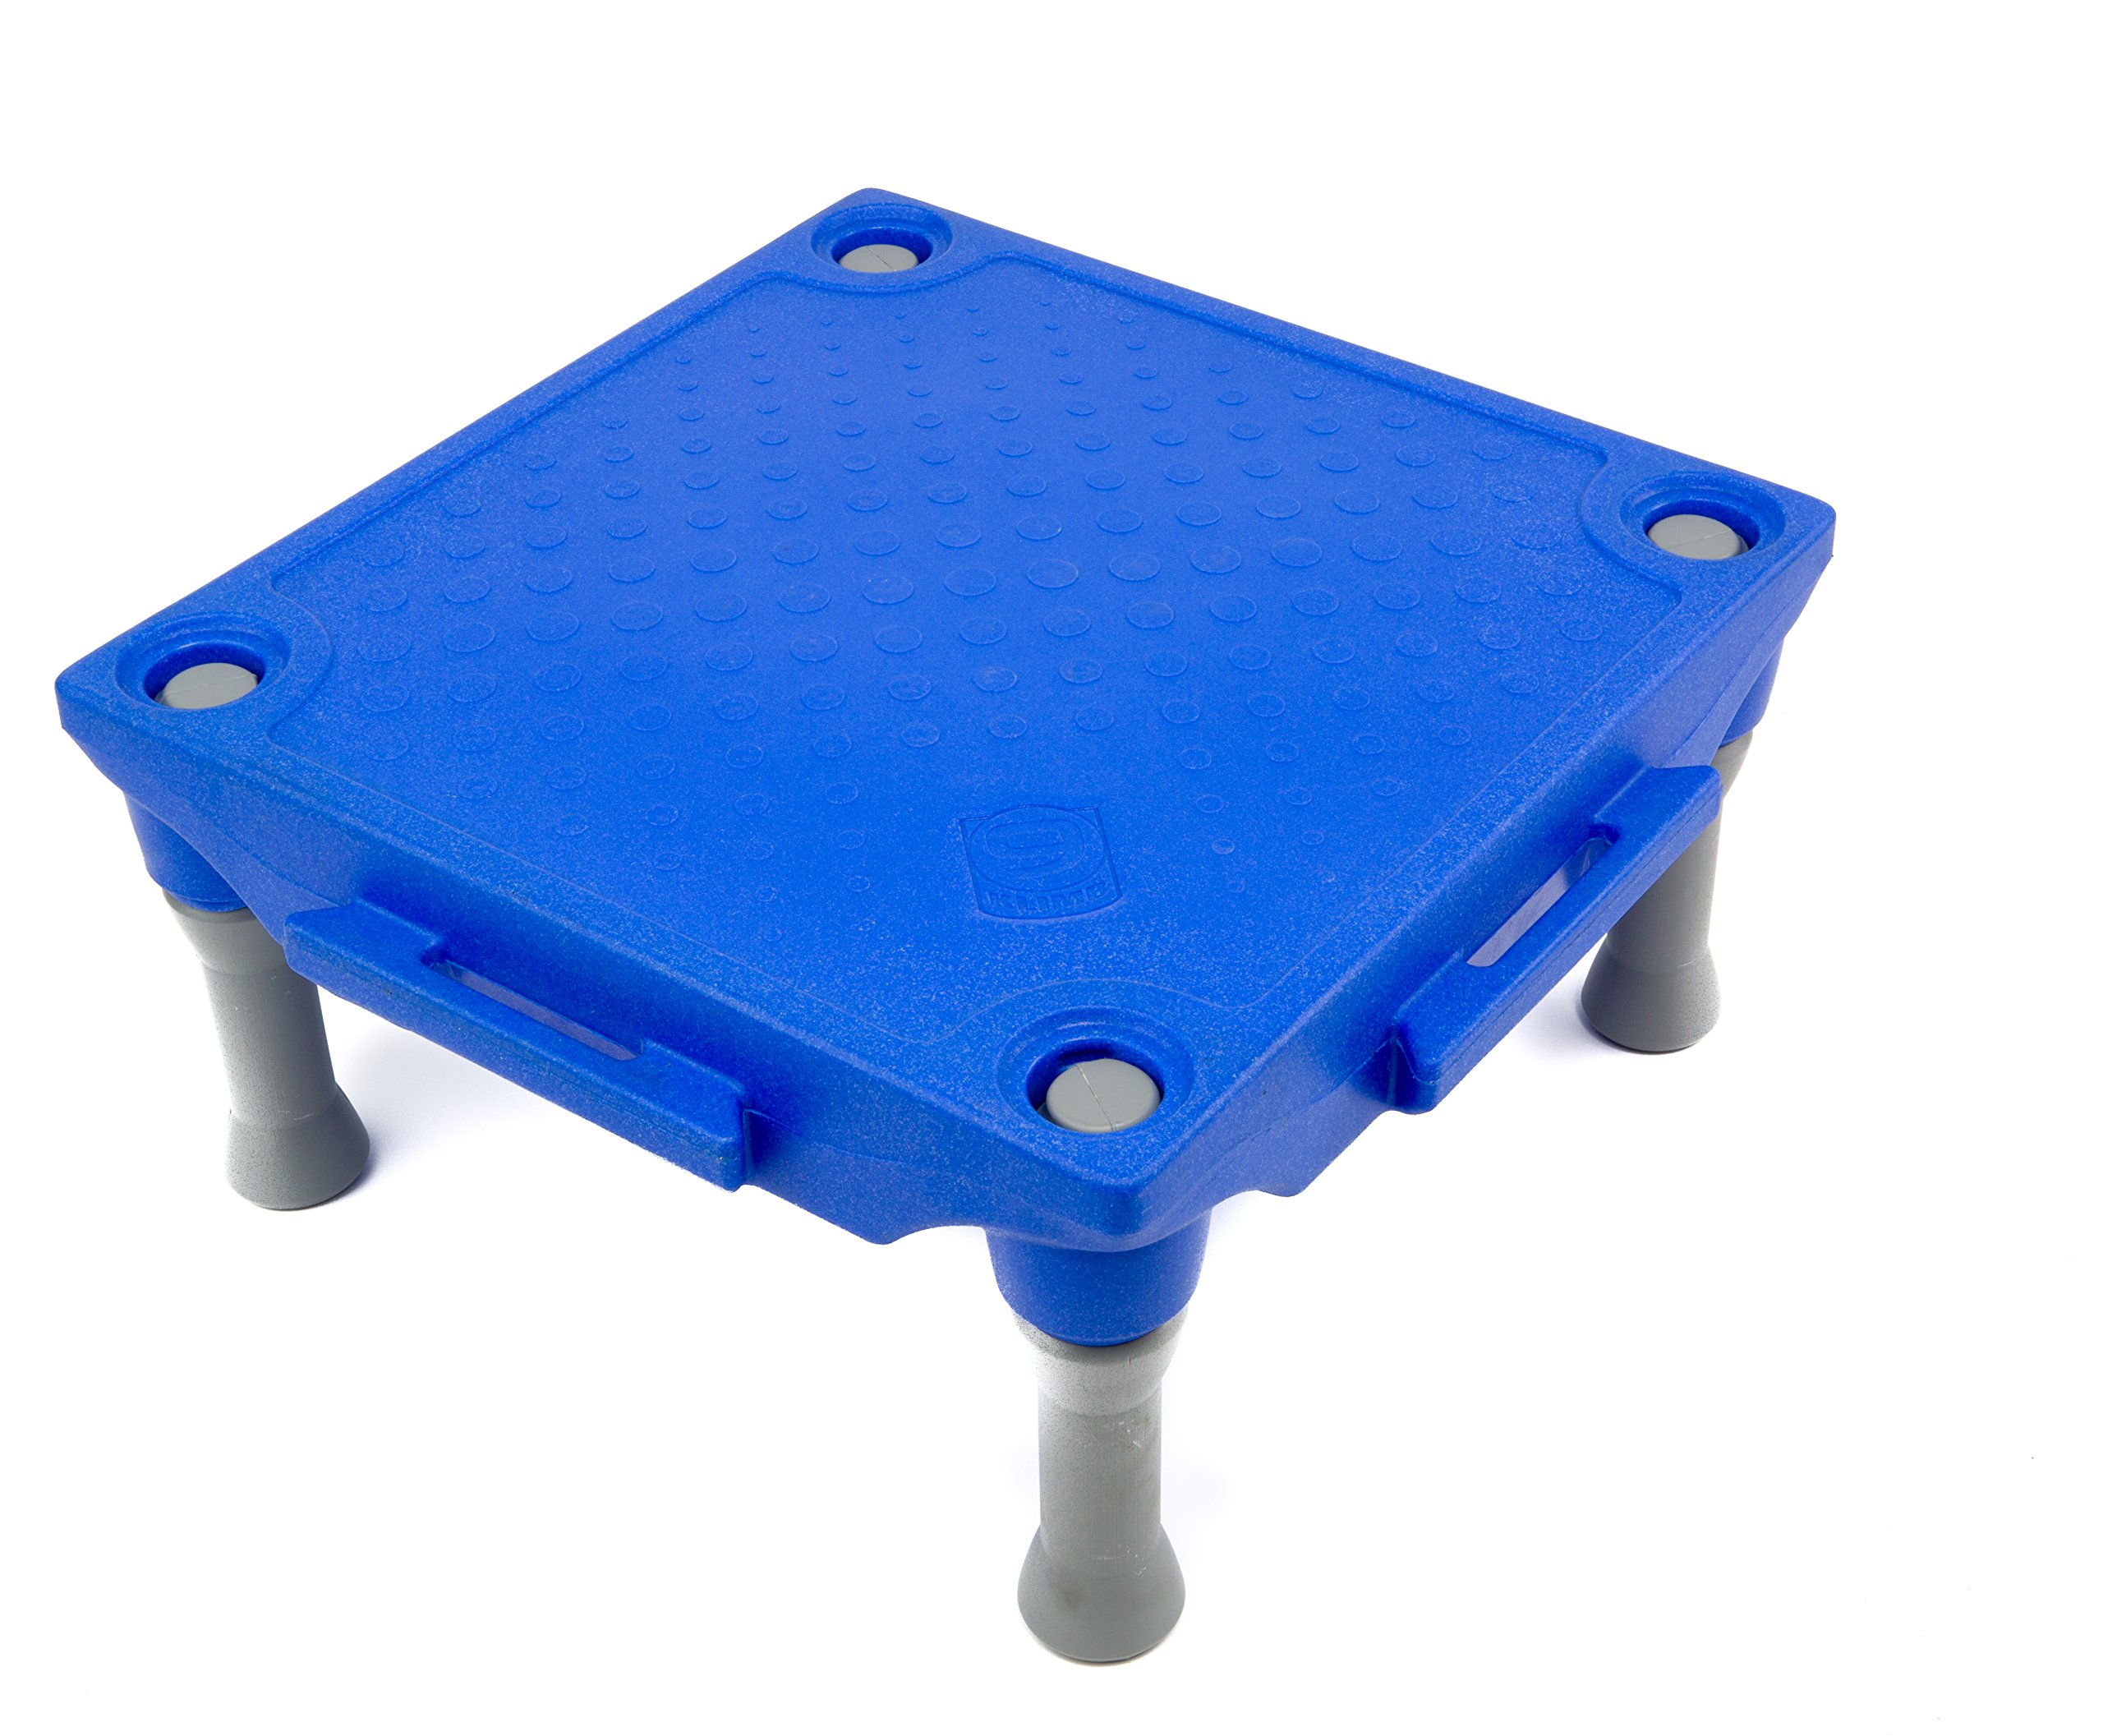 Blue-9 Pet Products The KLIMB Dog Training Platform and Agility System (Blue) by Blue-9 Pet Products (Image #2)